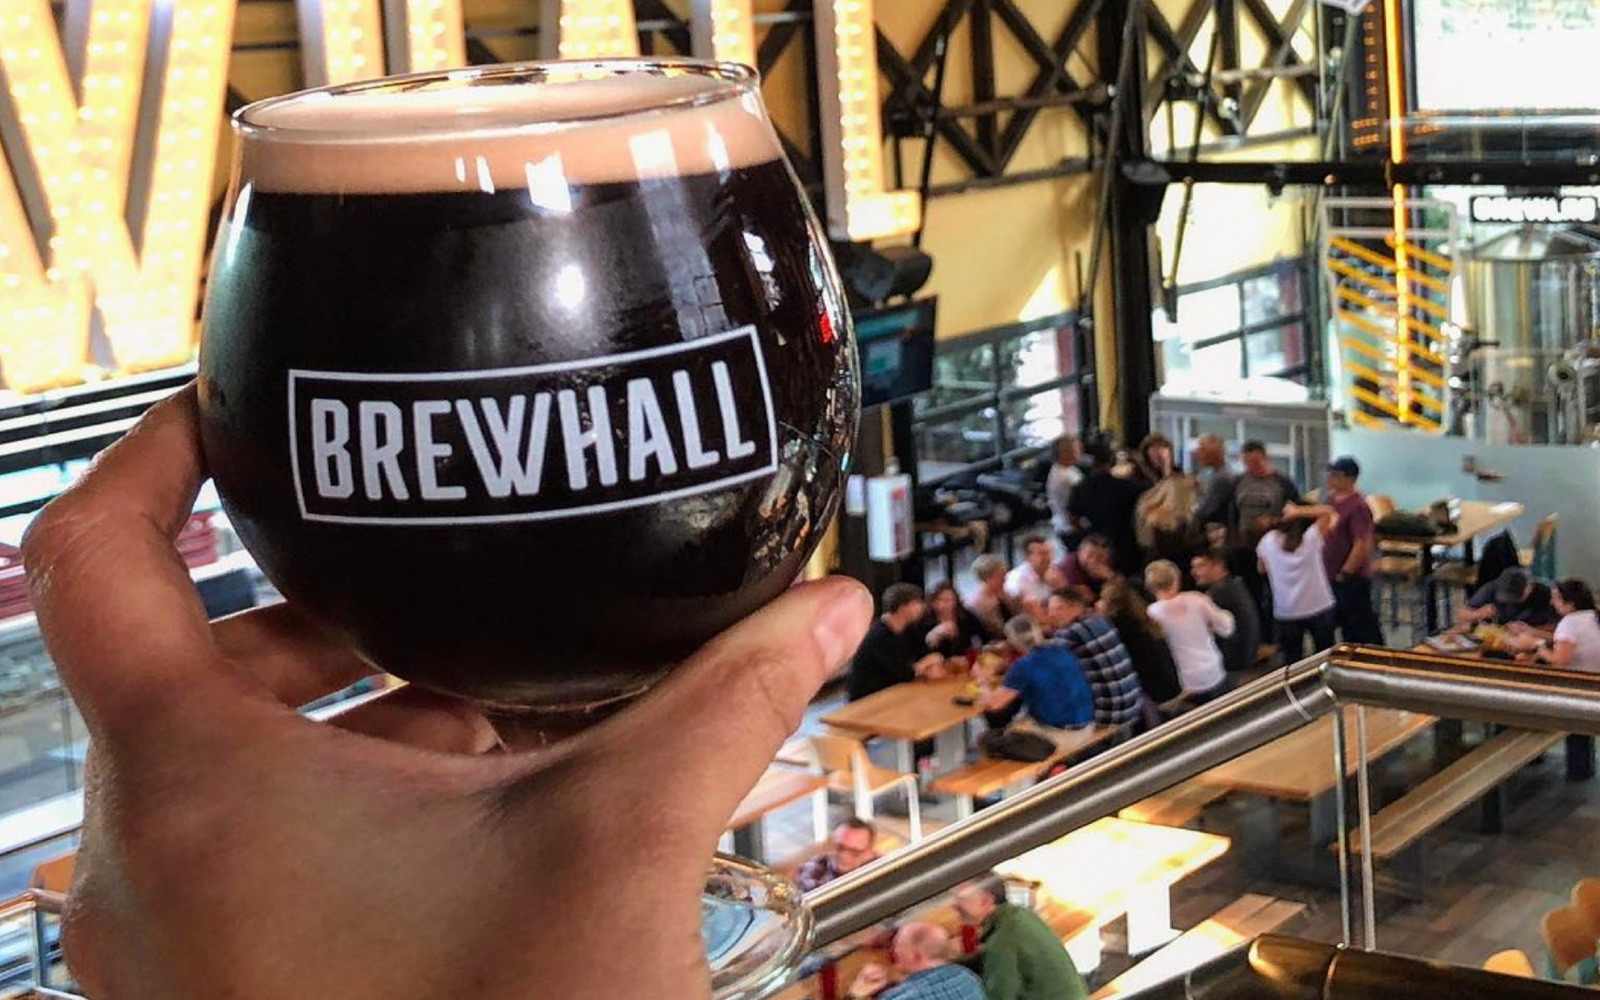 A man holds up a stout at Brewhall, Olympic Village